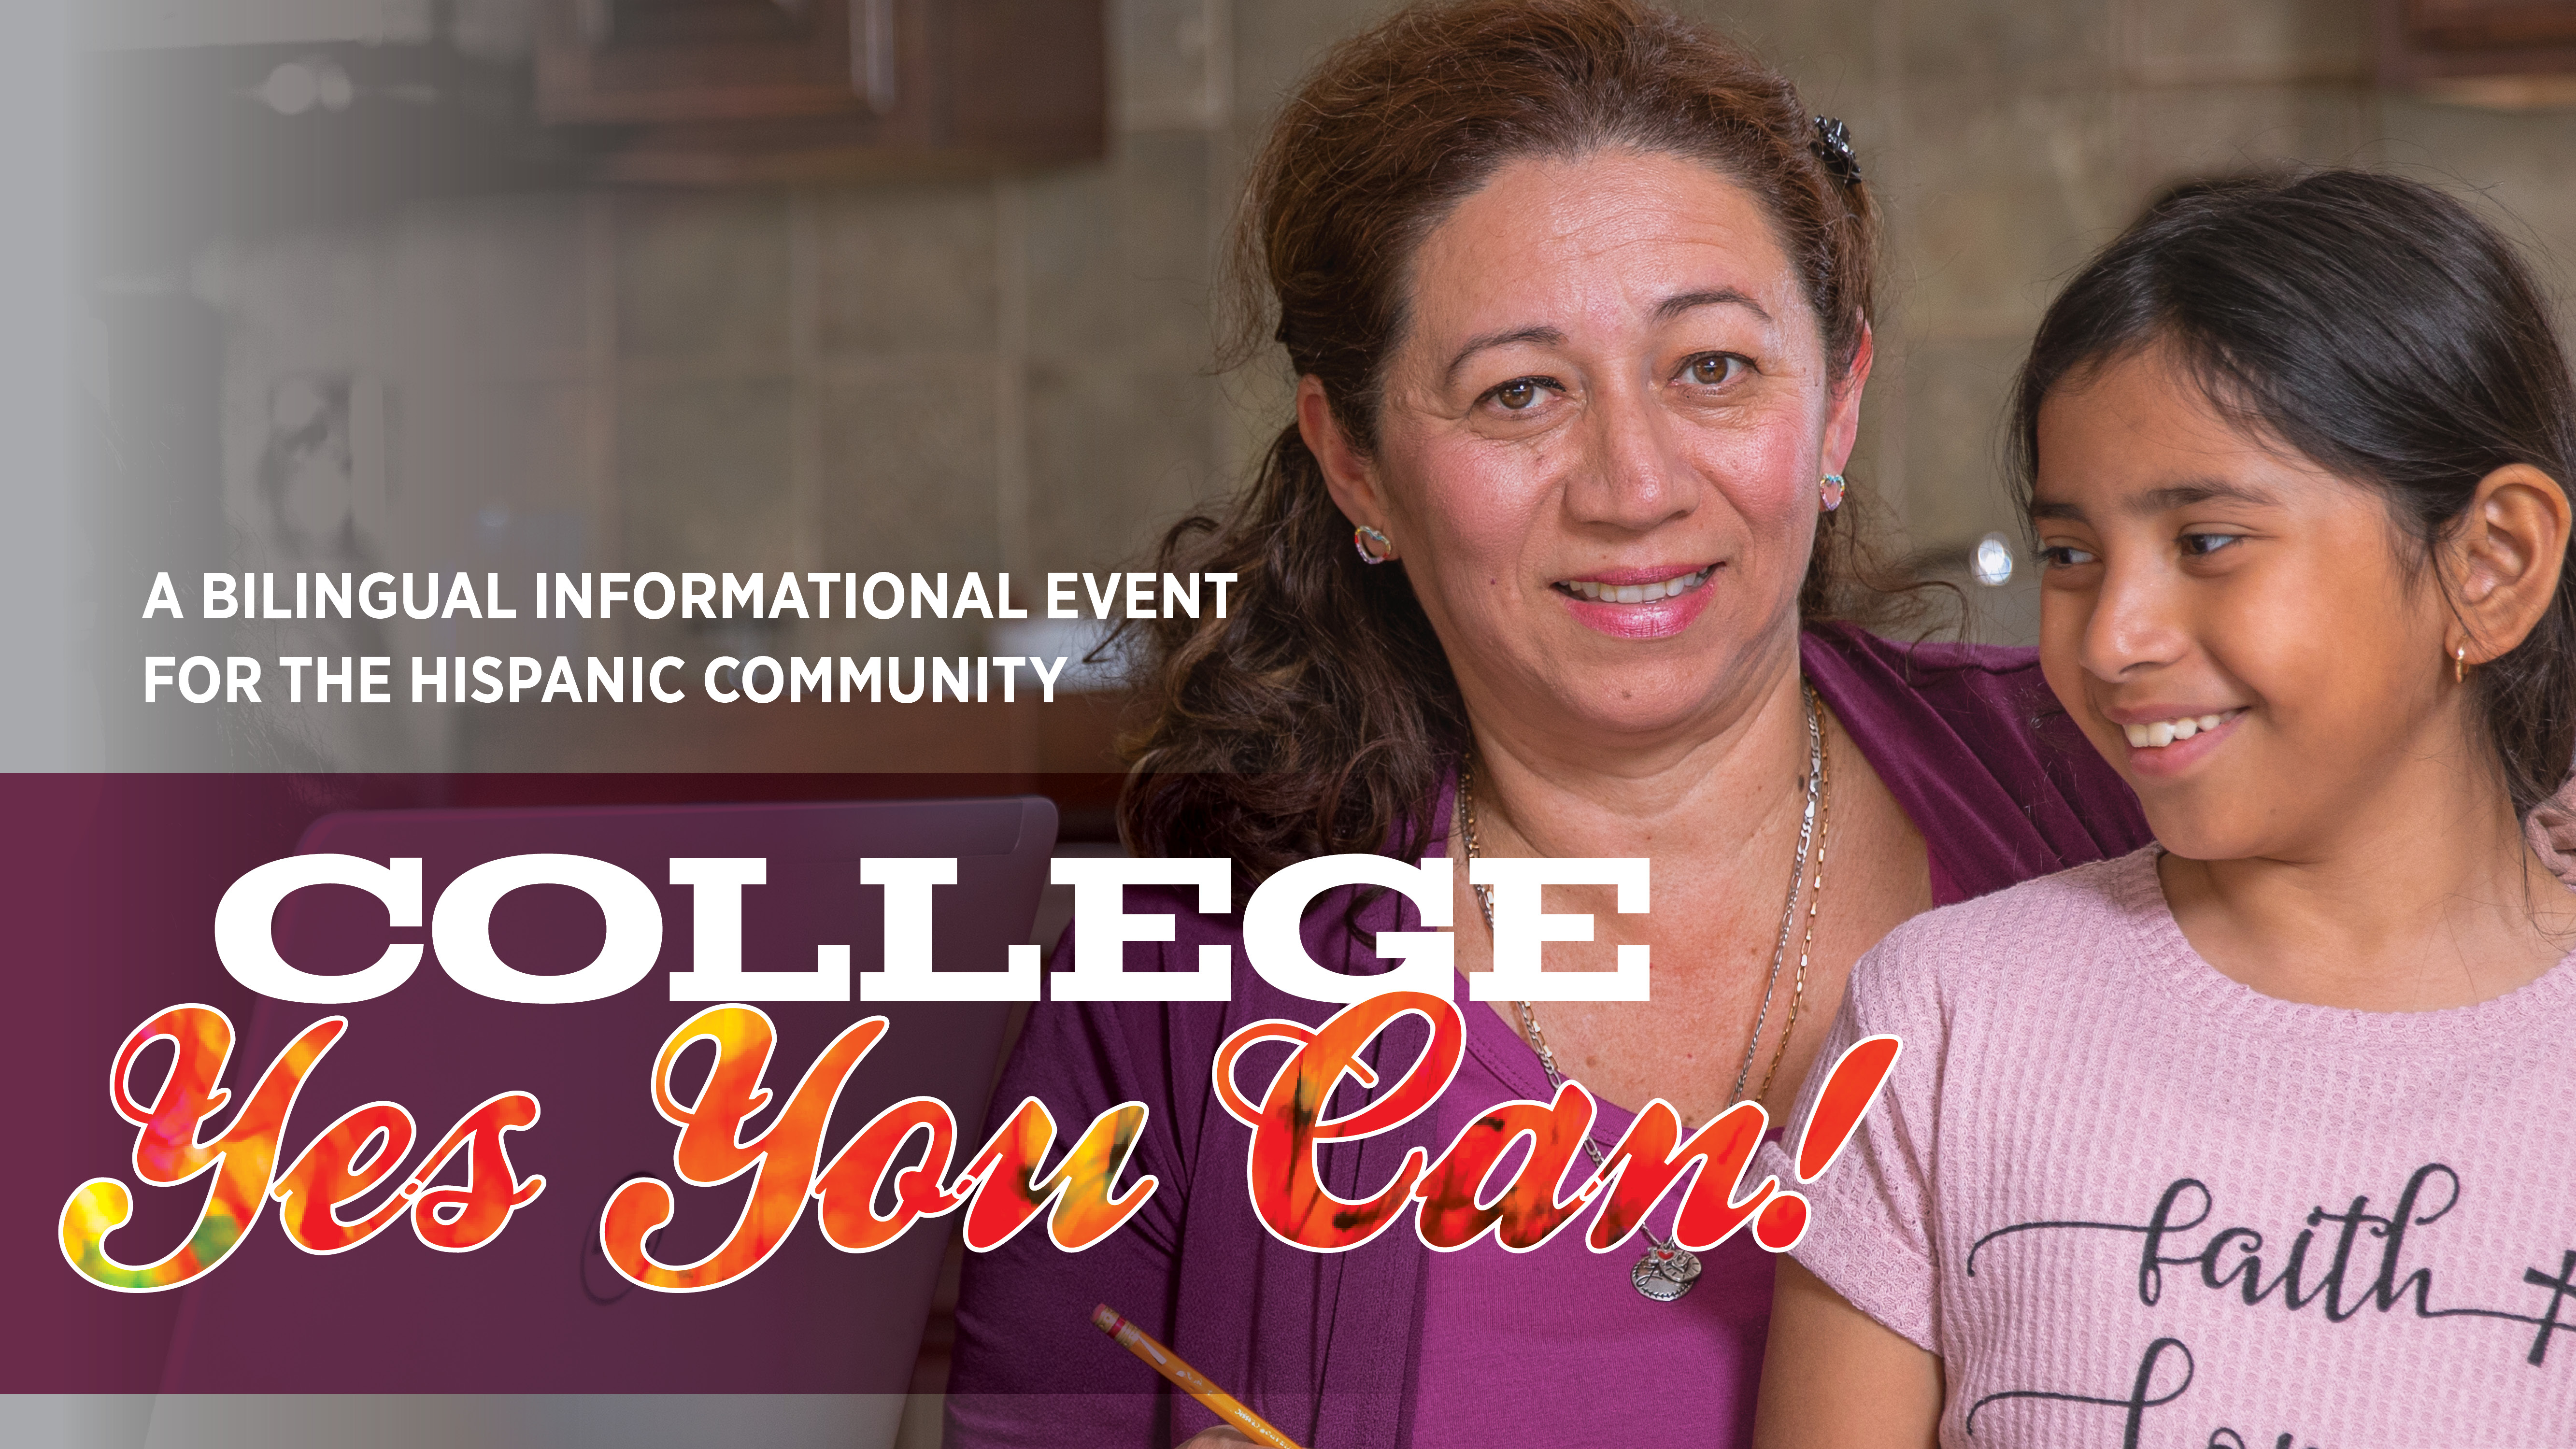 College - Yes You Can! | A BILINGUAL INFORMATIONAL EVENT FOR THE HISPANIC COMMUNITY Thursday, October 3 | 6-8 p.m.